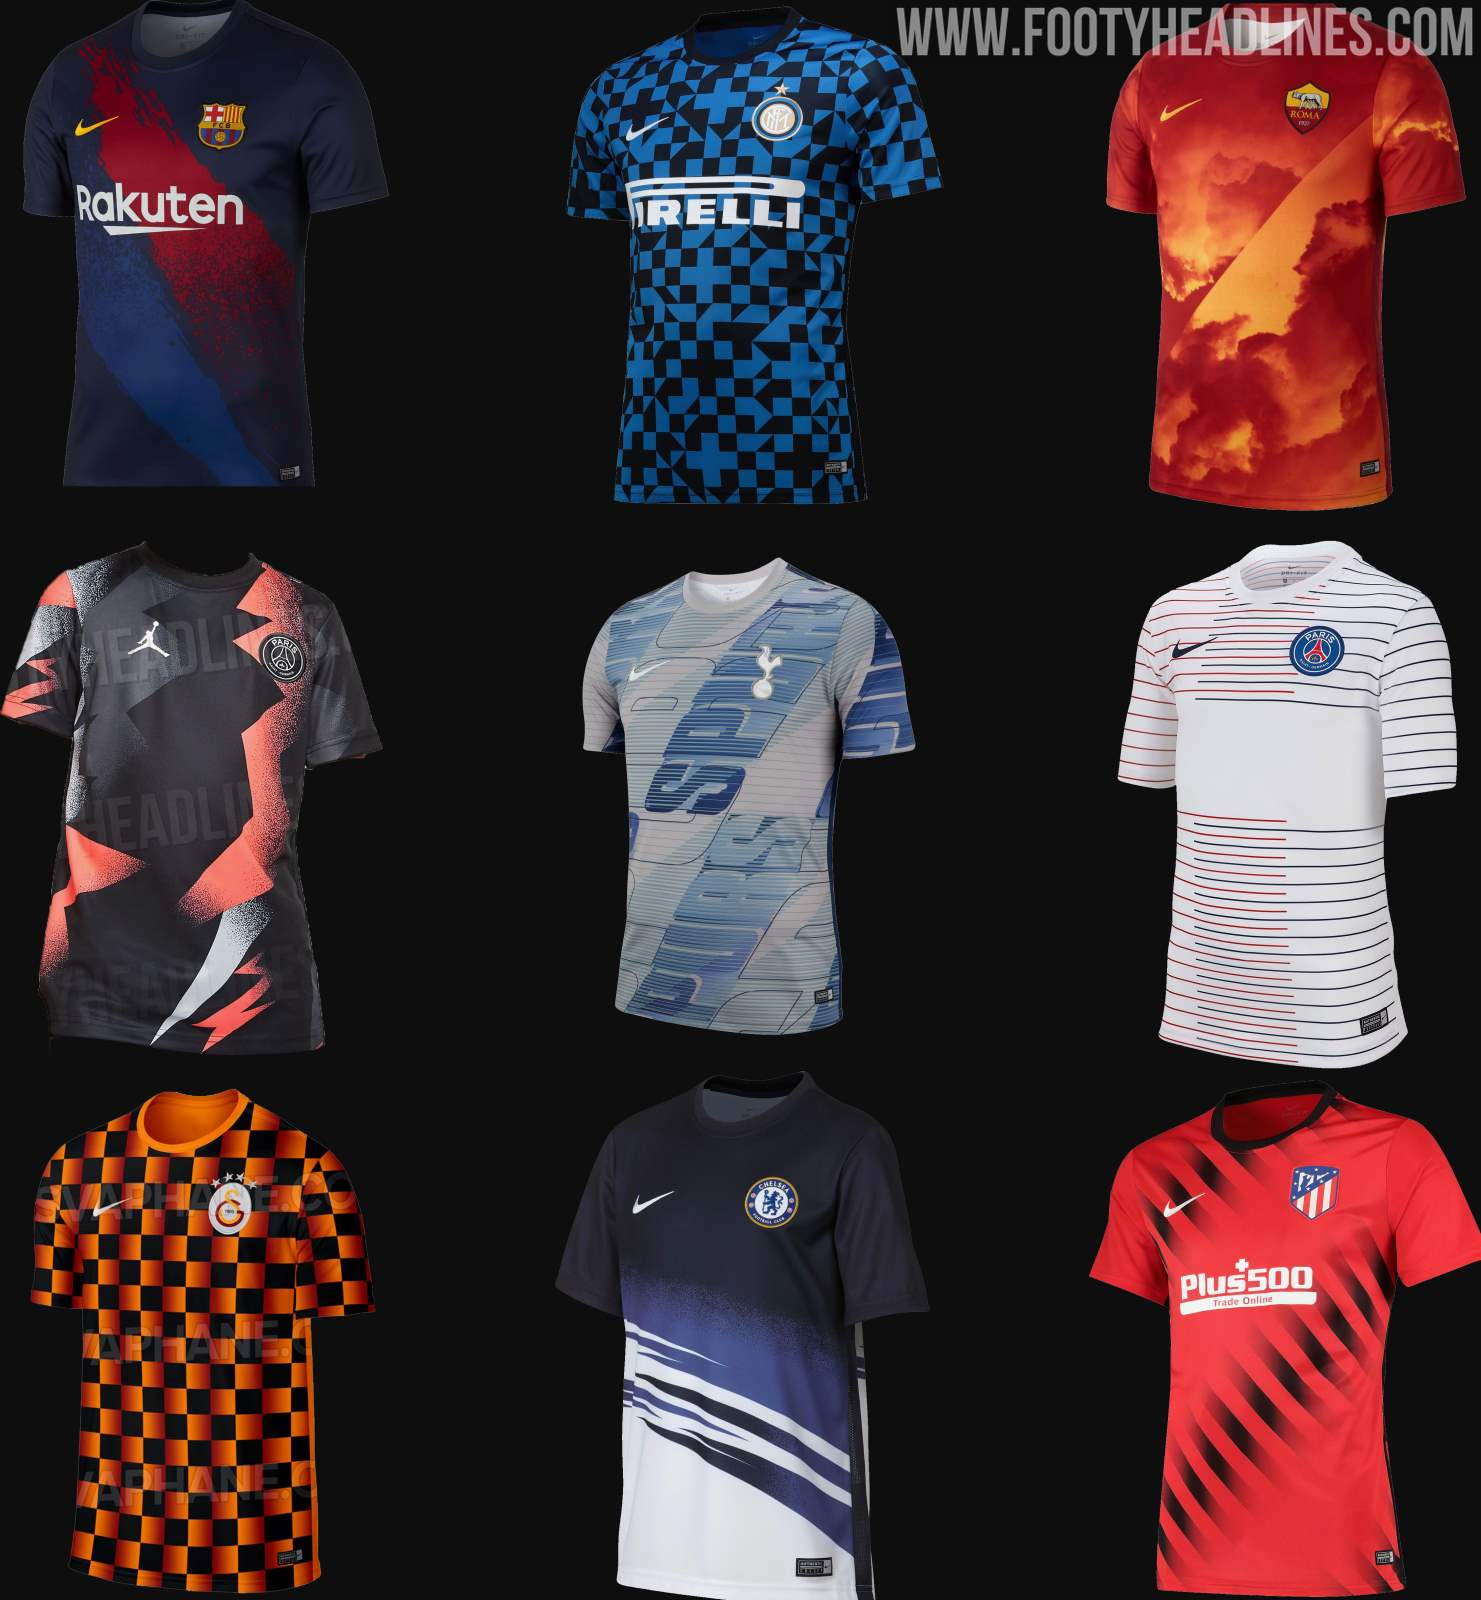 new product b9429 fef3d All Unique - All Nike 19-20 Pre-Match Jerseys Released ...